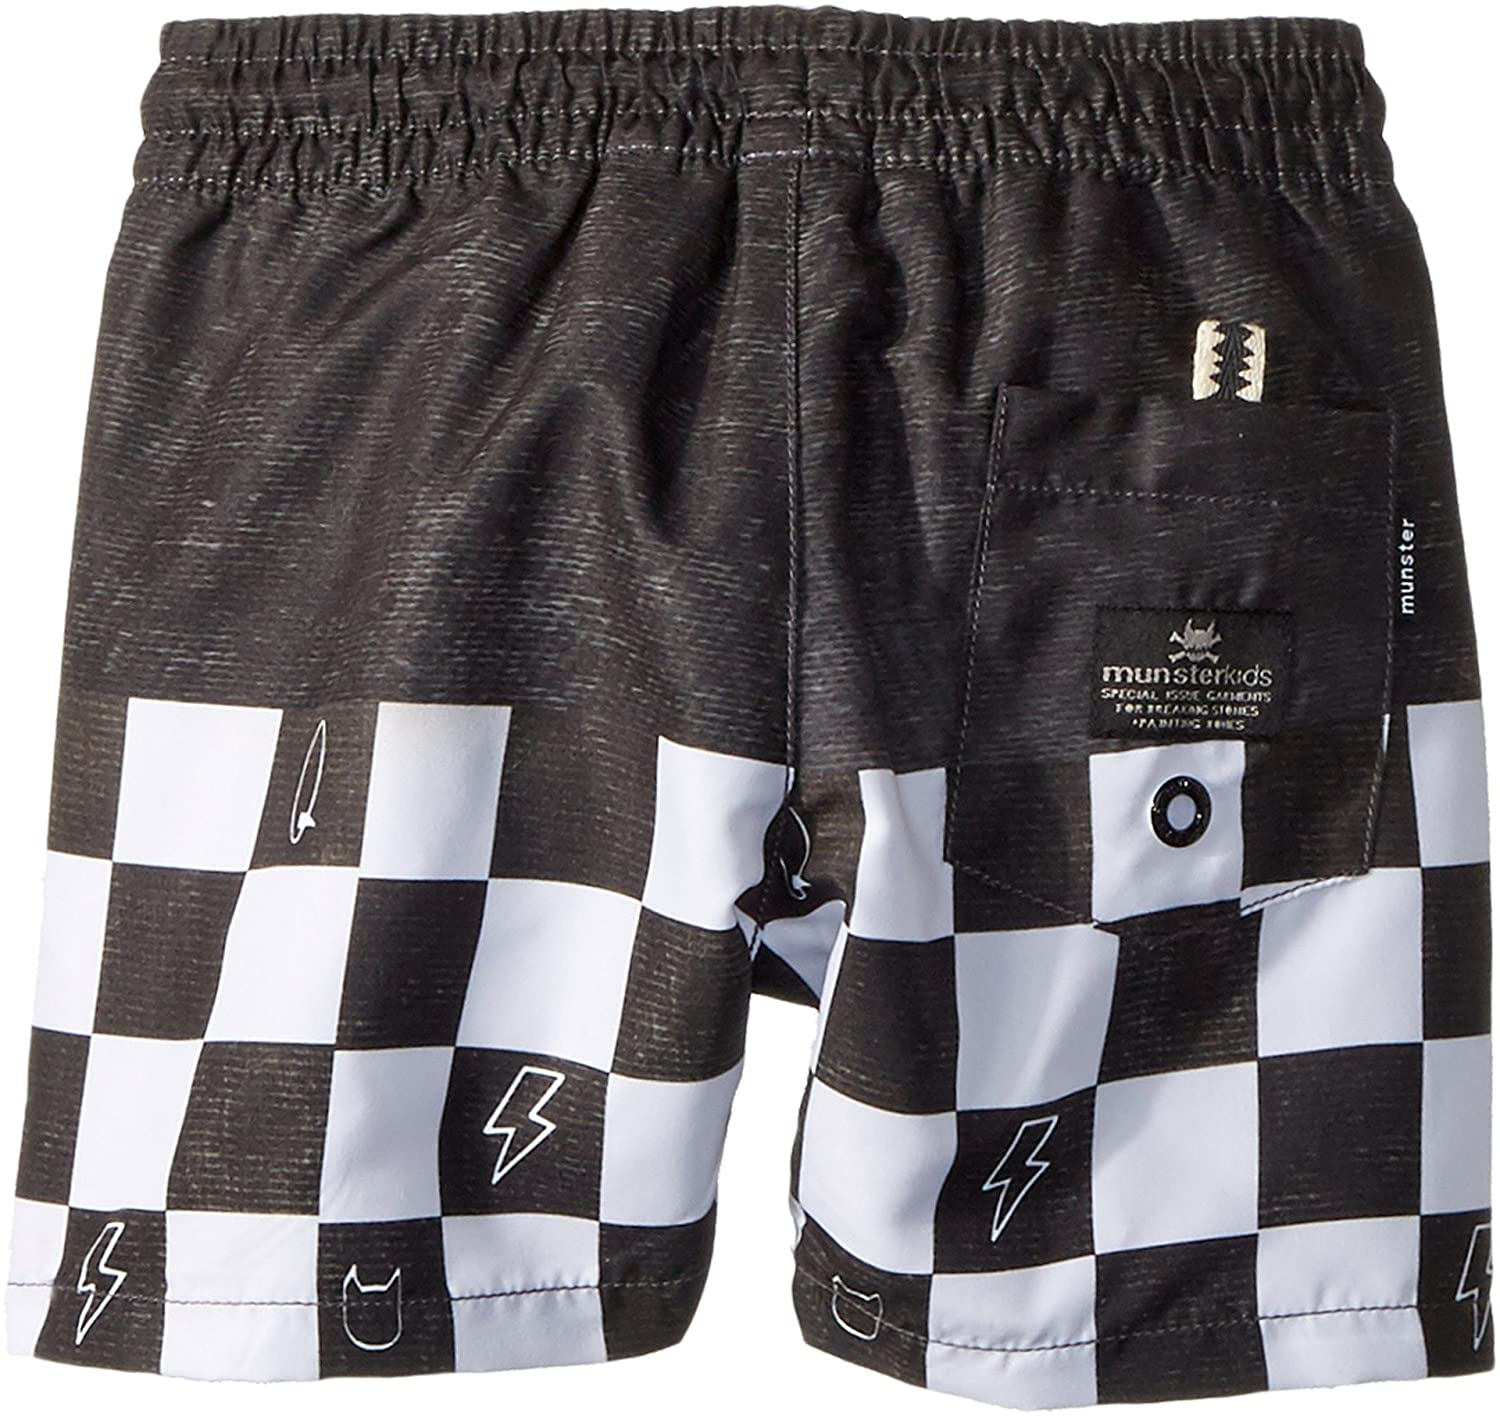 fbabb39f31 Amazon.com: Munster Kids Baby Boy's Wall Ride Shorts (Toddler/Little  Kids/Big Kids) Black Check 14: Clothing